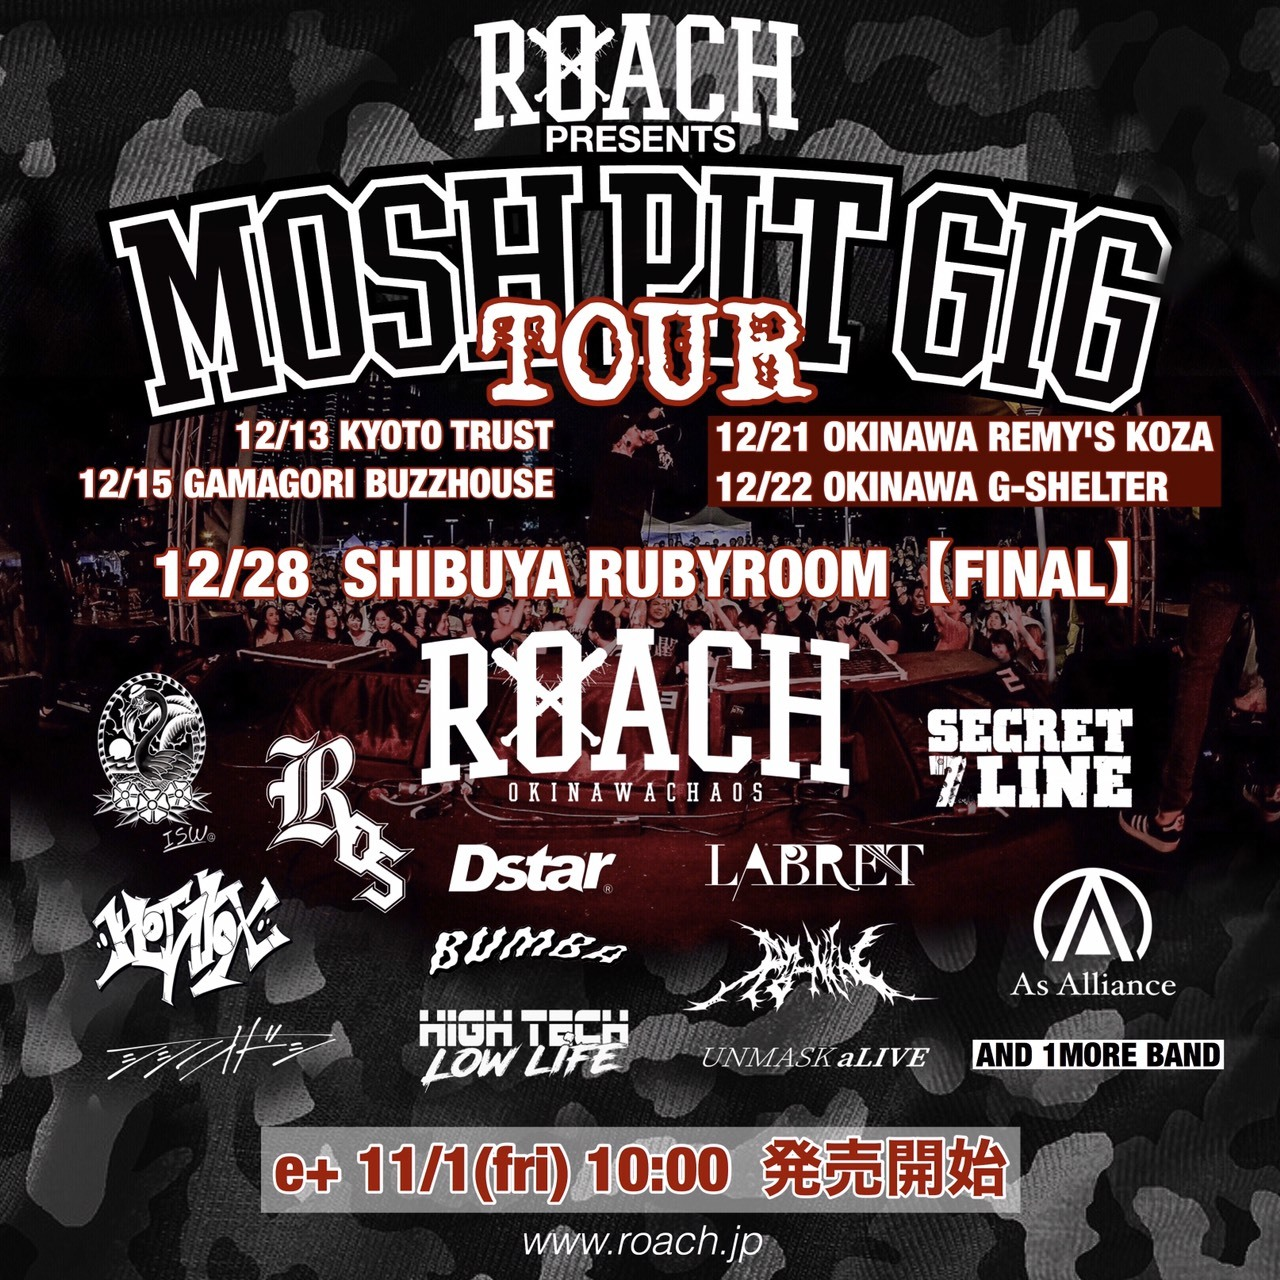 ROACH PRESENTS MOSH PIT GIG TOUR